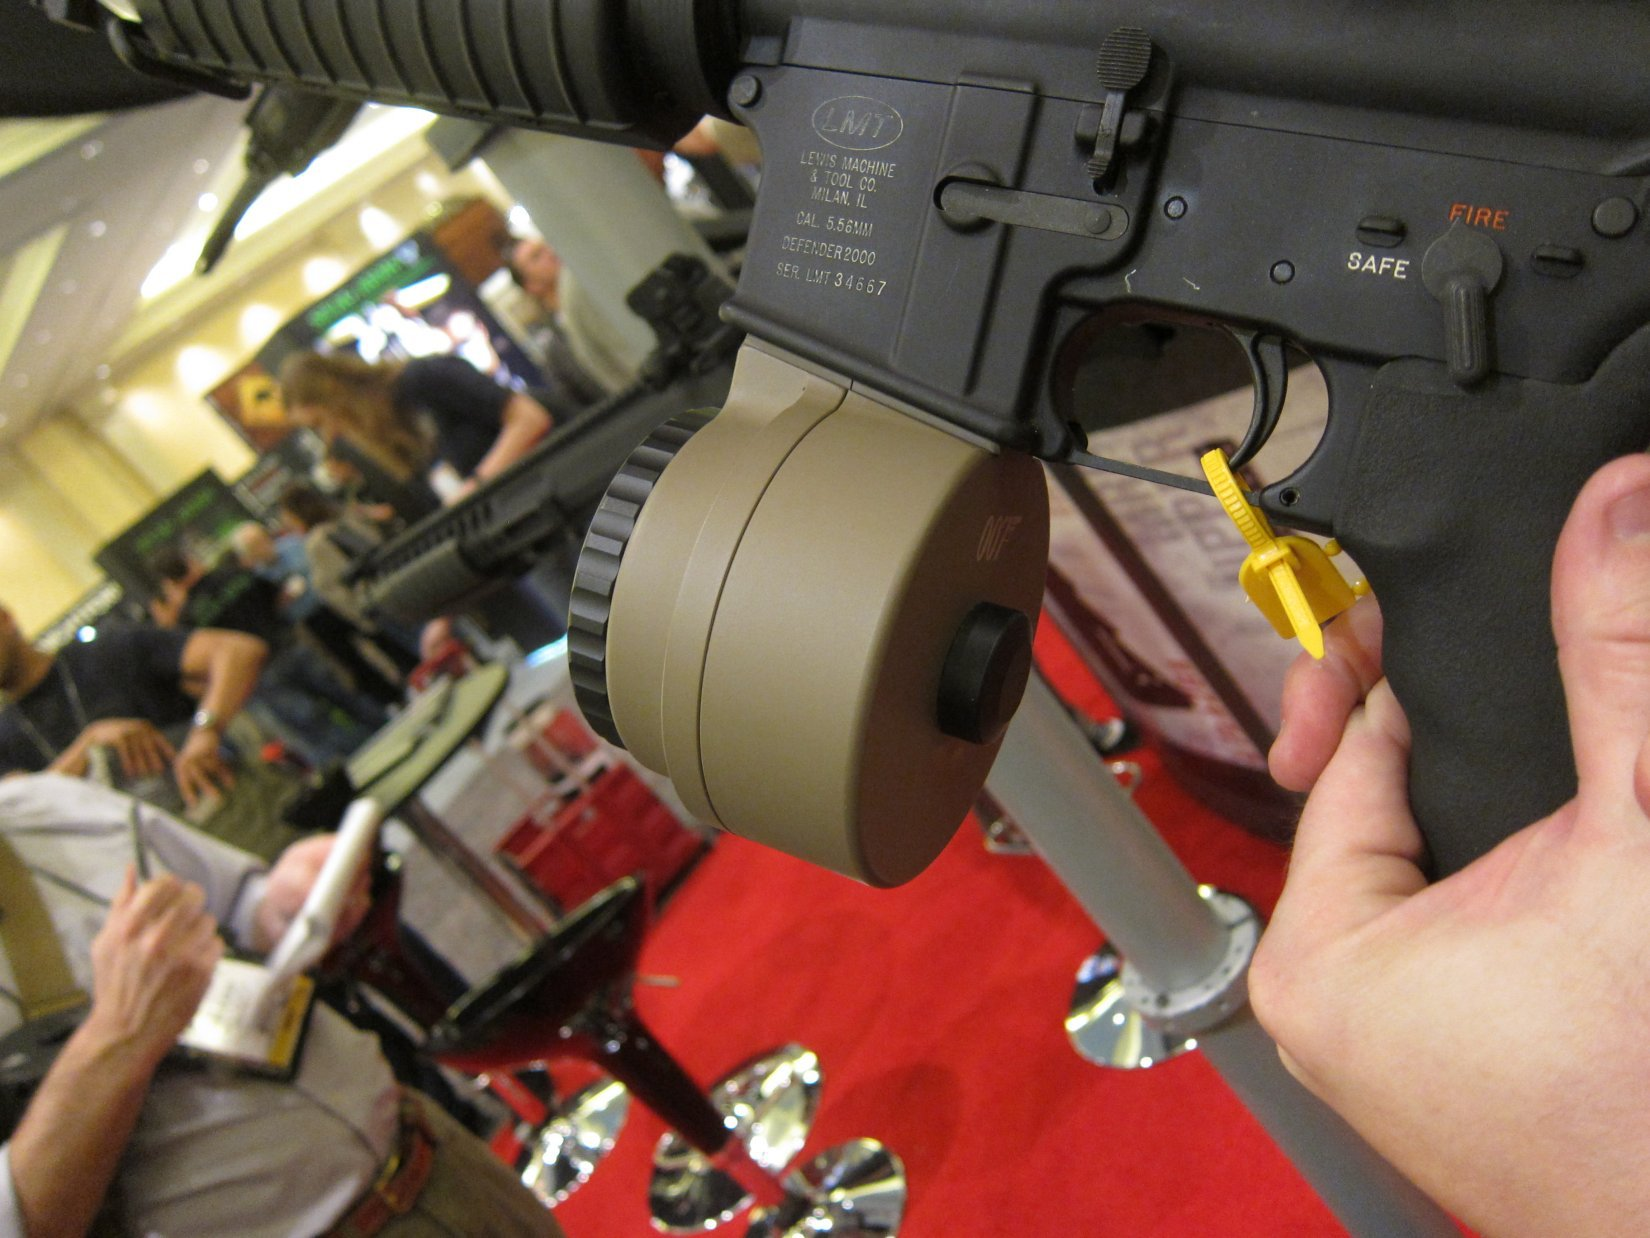 XS Products X 15 S 50 Round 5.56x45mm NATO .223 Rem. Drum Magazine SHOT Show 2012 DefenseReview.com DR 1 XS Products 50 Round Drum Magazines for 5.56x45mm NATO/.223 Rem. and 7.62x51mm NATO/.308 Win. Tactical Rifle/Carbine/SBRs!